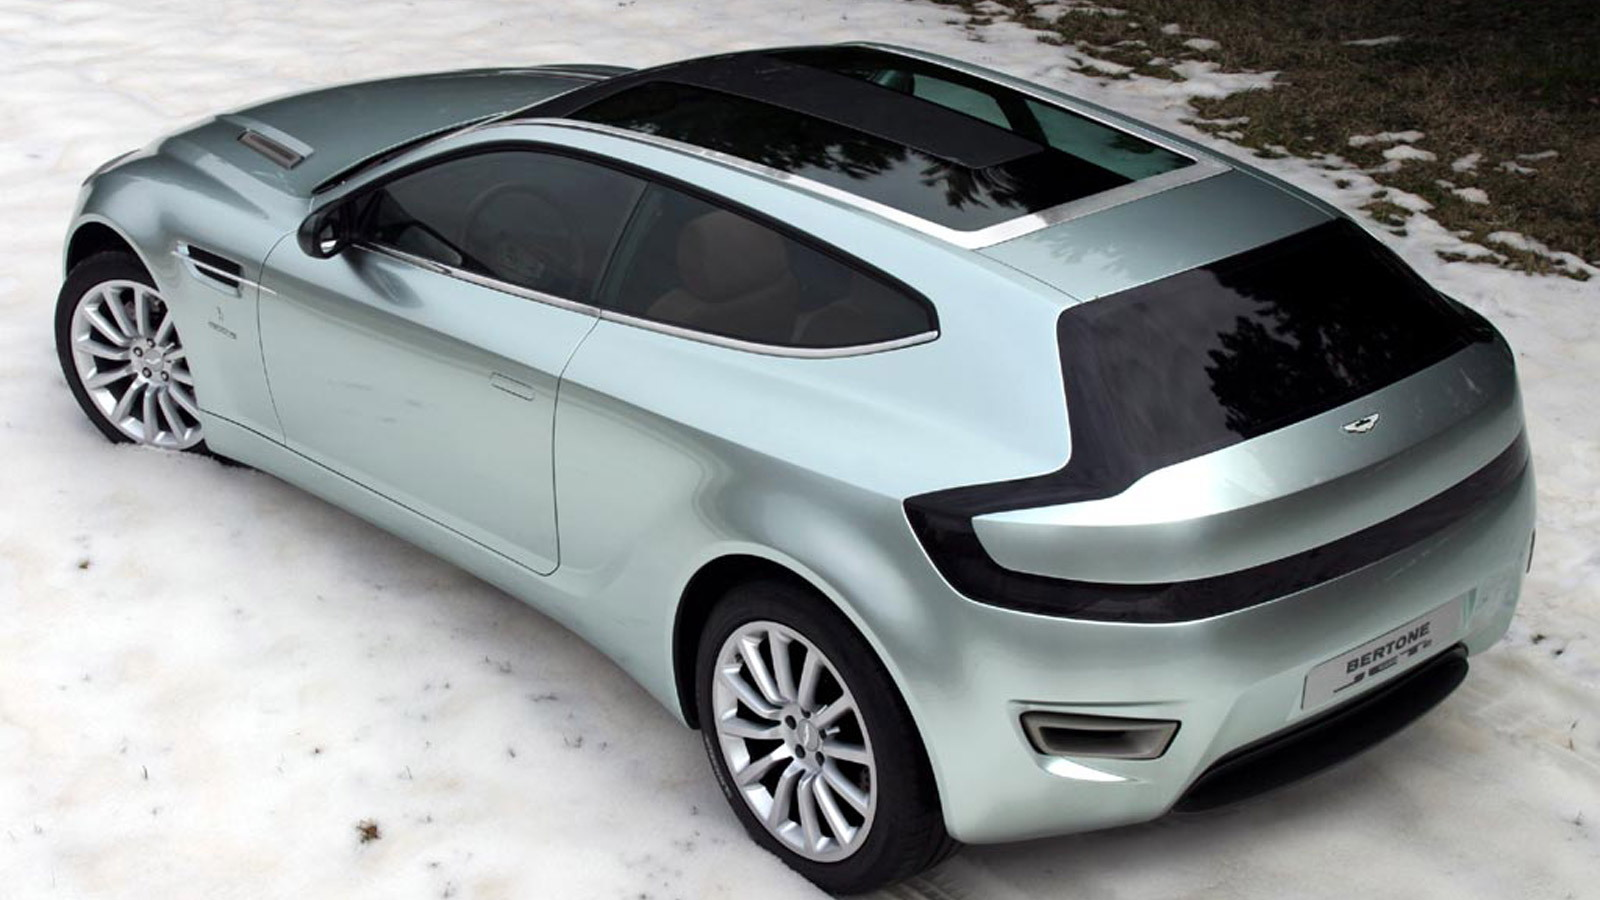 Bertone Jet 2 shooting brake concept based on the 2004 Aston Martin Vanquish